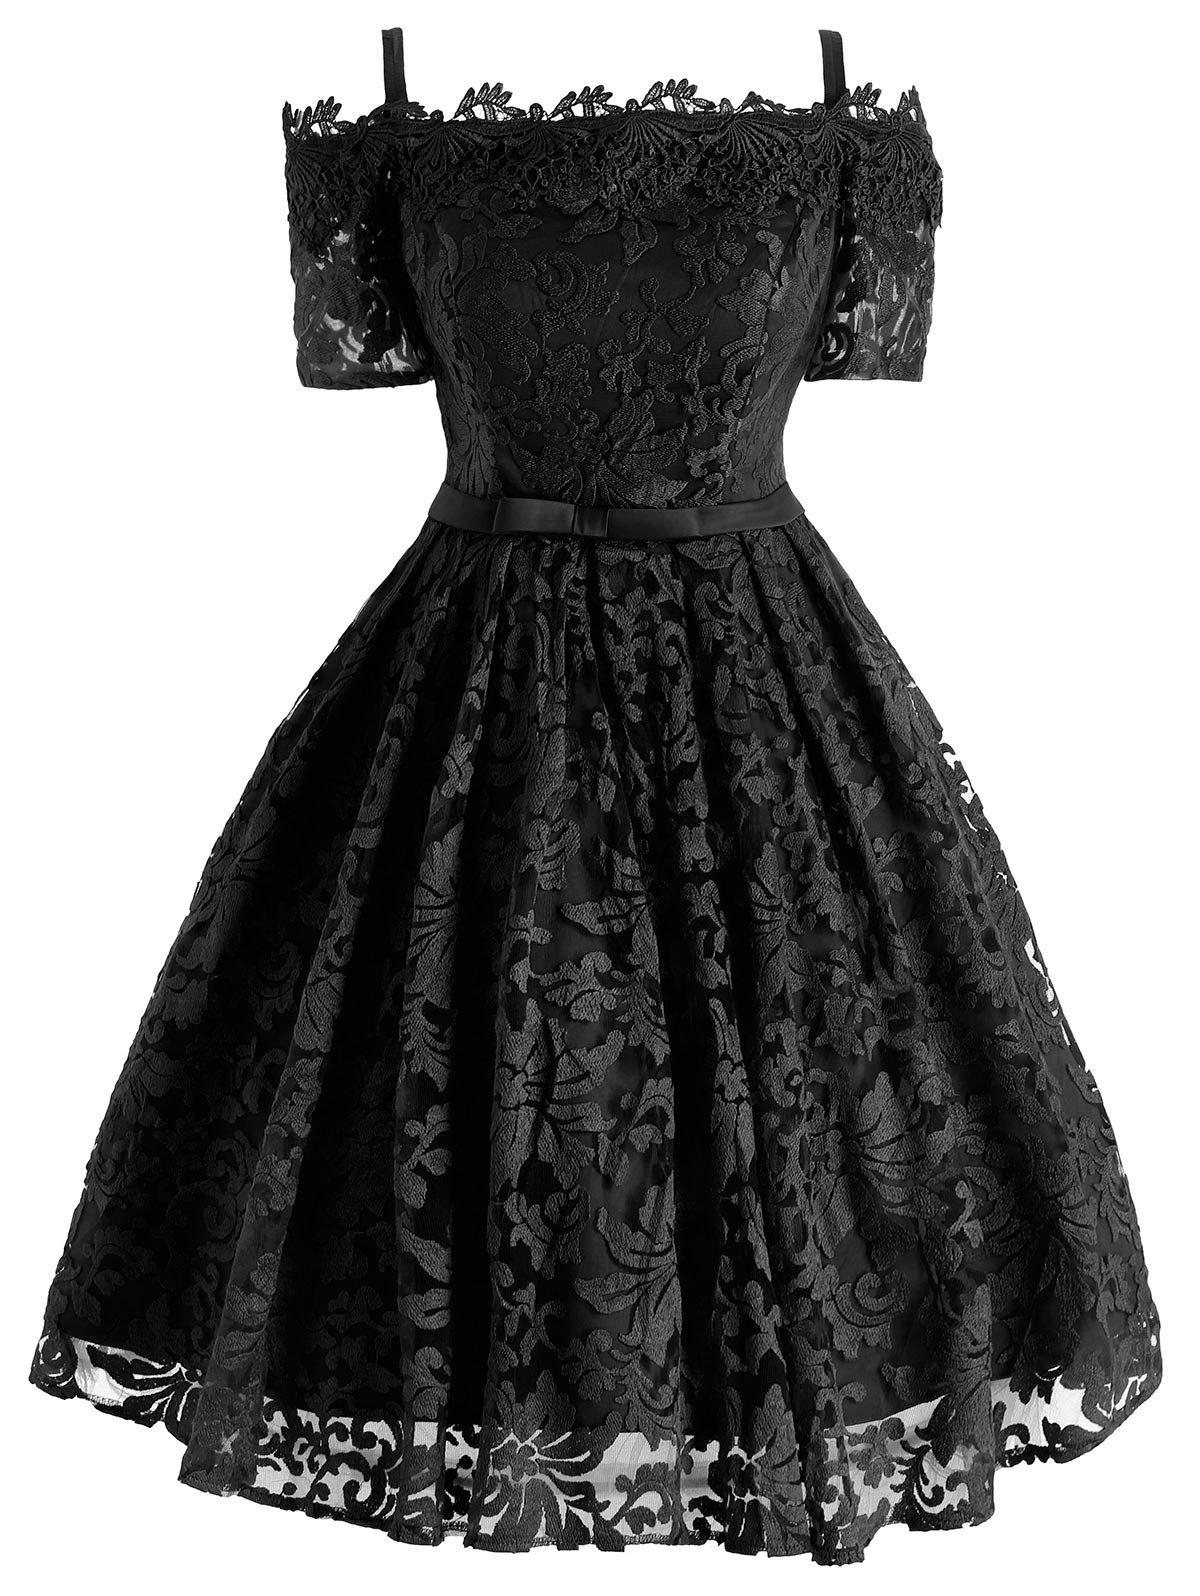 Floral Lace Cold Shoulder Bowknot Formal Dress - BLACK L